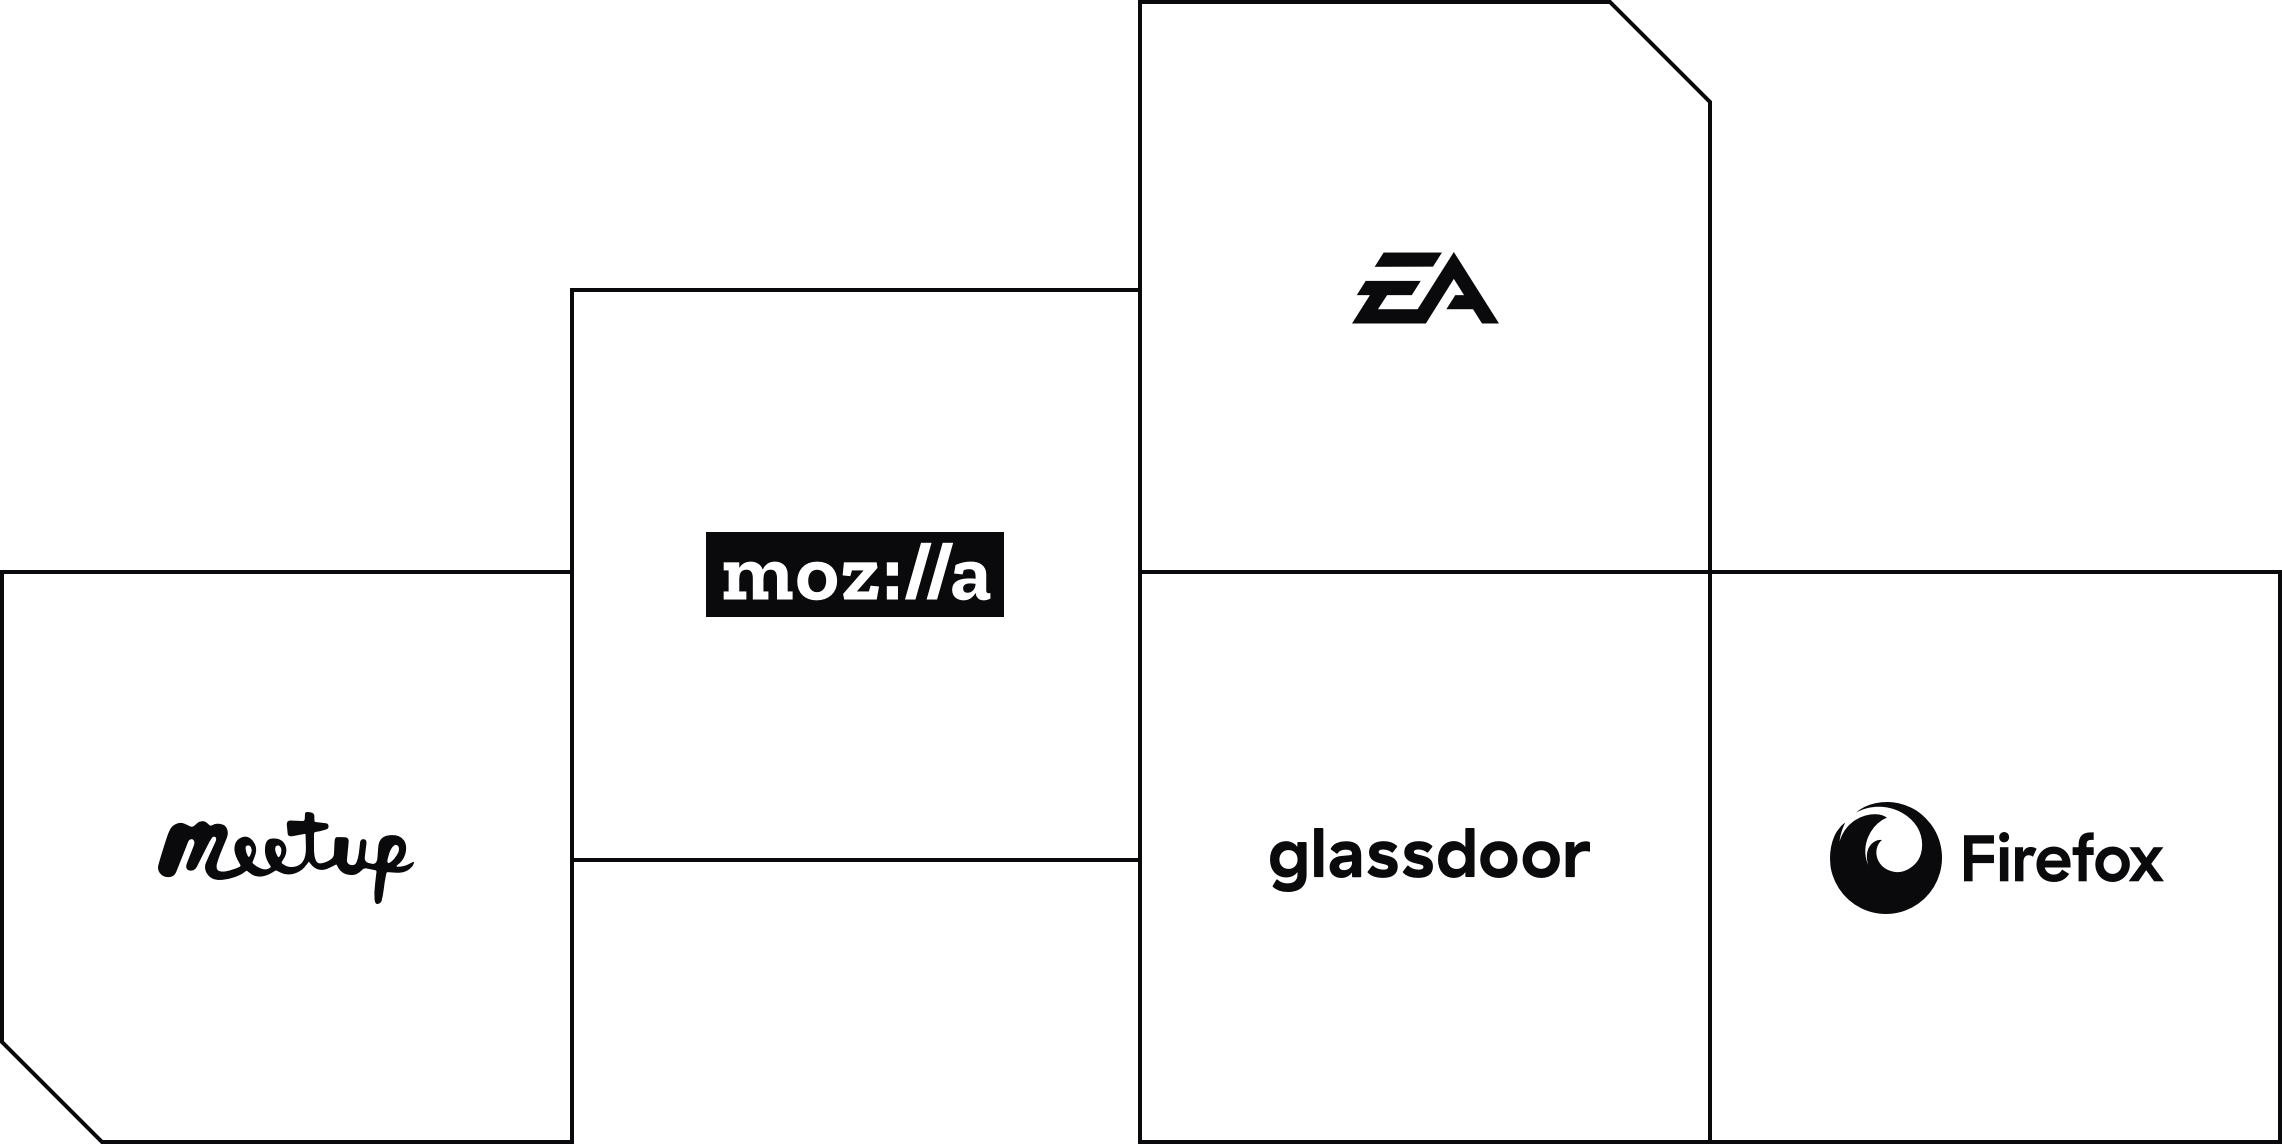 grid of company logos